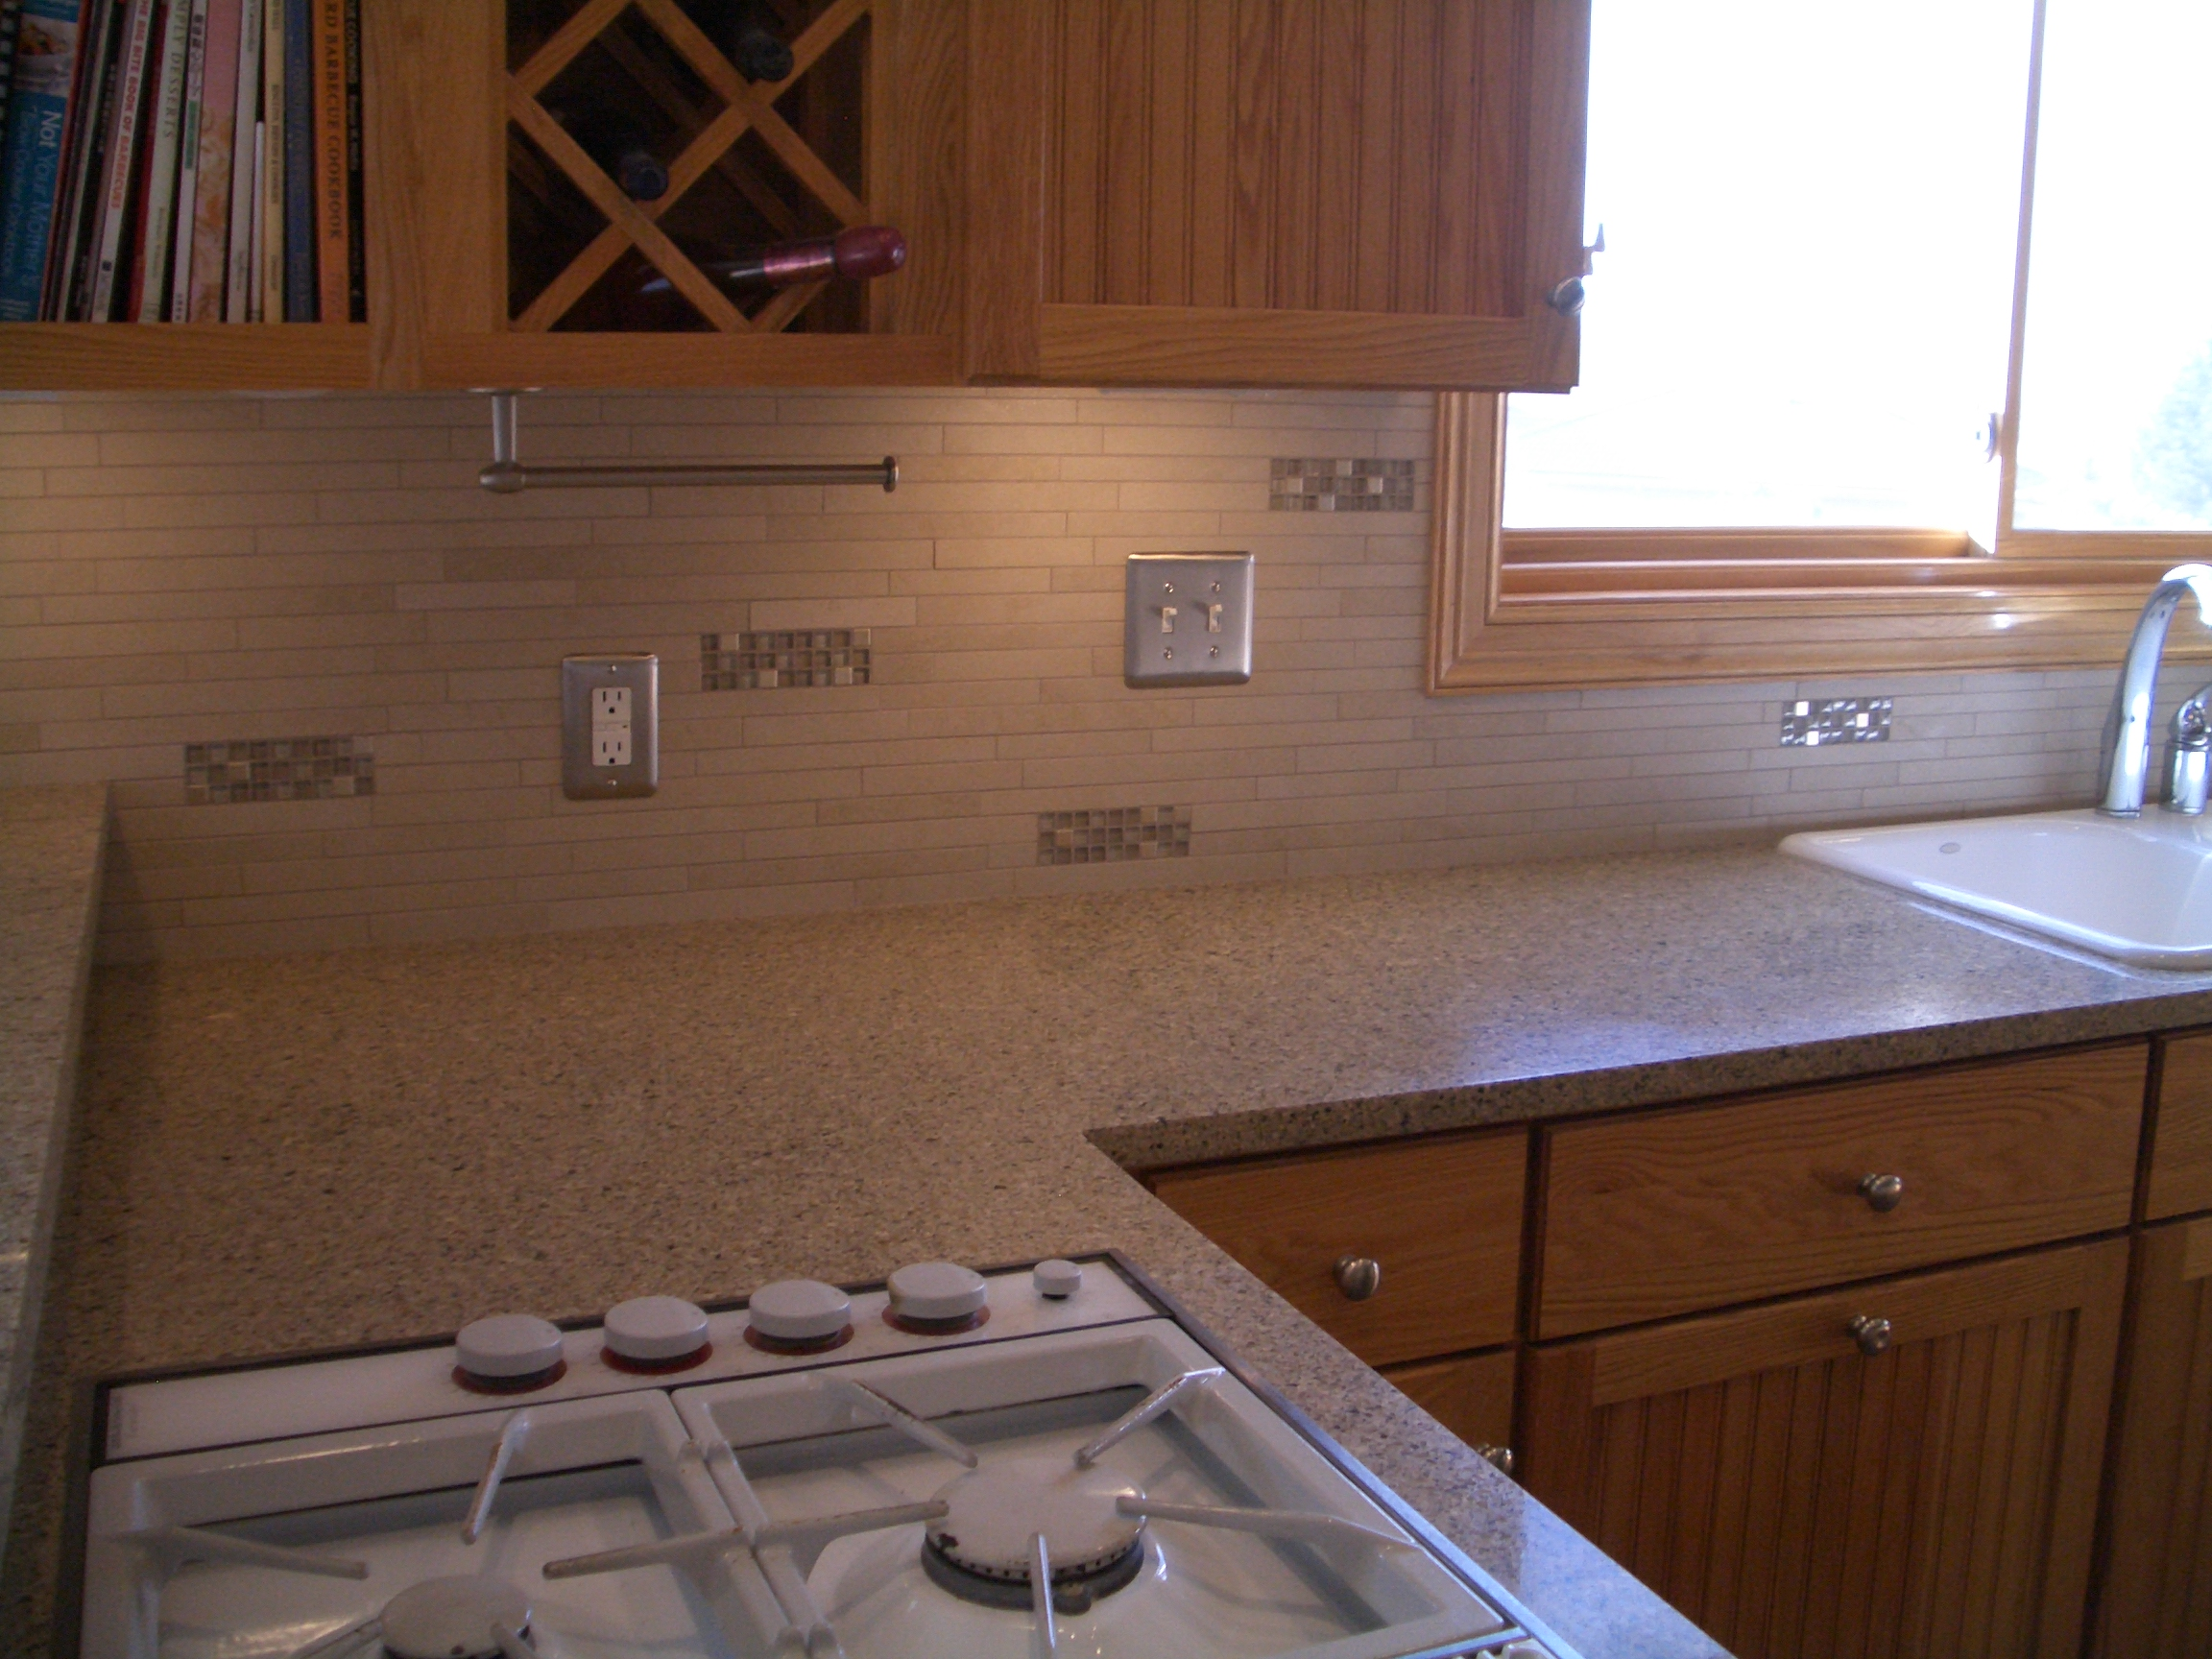 Kitchen Backsplash Accents porcelain and glass kitchen backsplash in windsor